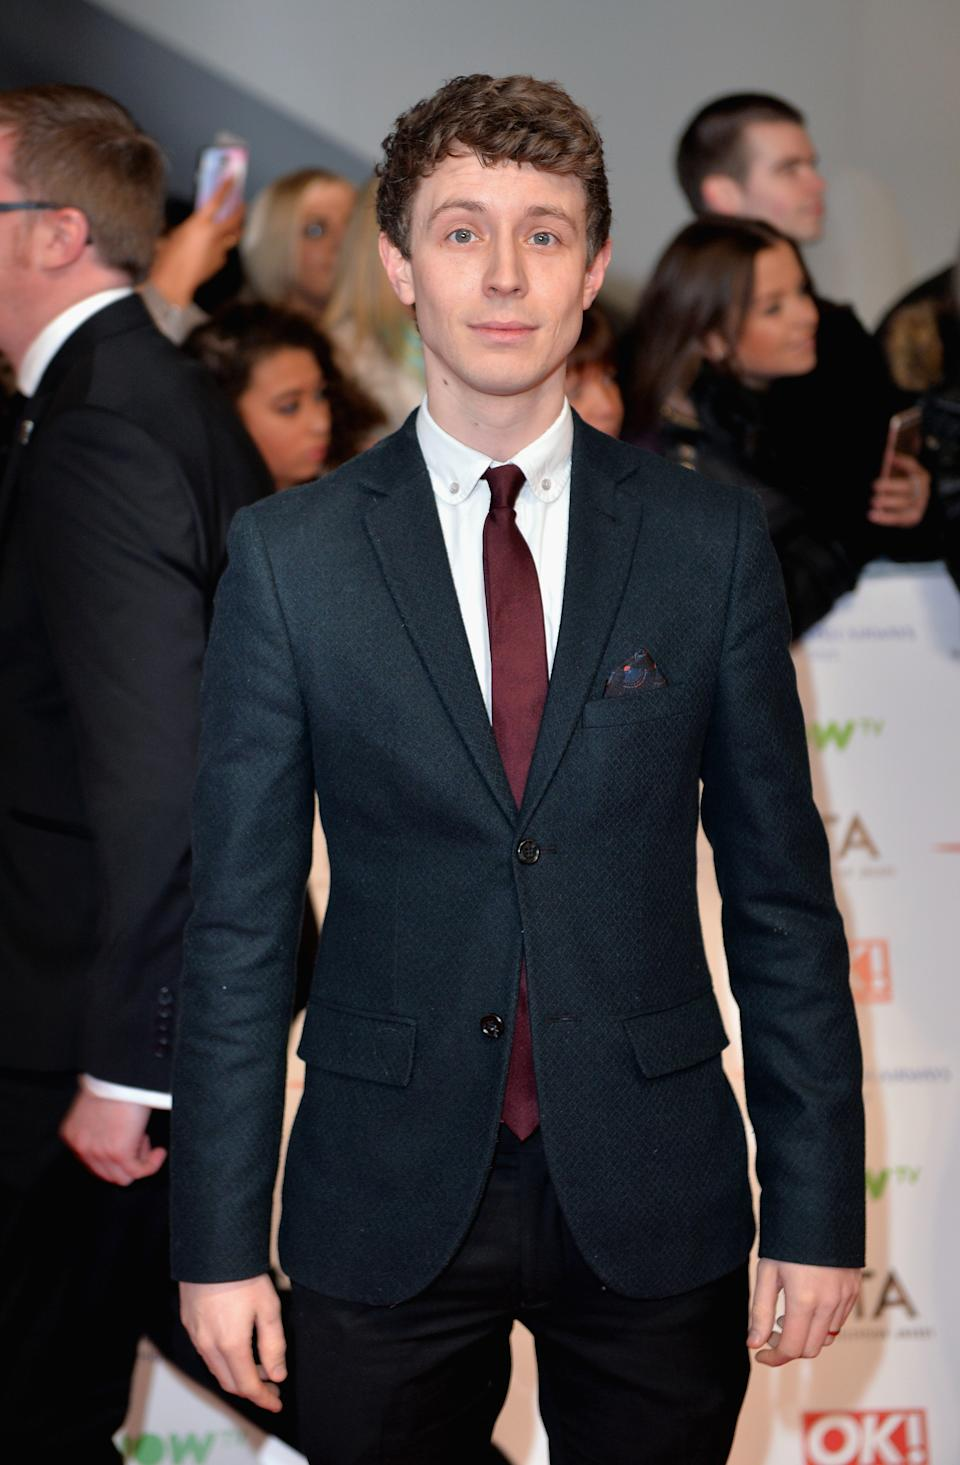 LONDON, ENGLAND - JANUARY 20: Matt Edmondson attends the 21st National Television Awards at The O2 Arena on January 20, 2016 in London, England. (Photo by Anthony Harvey/Getty Images)